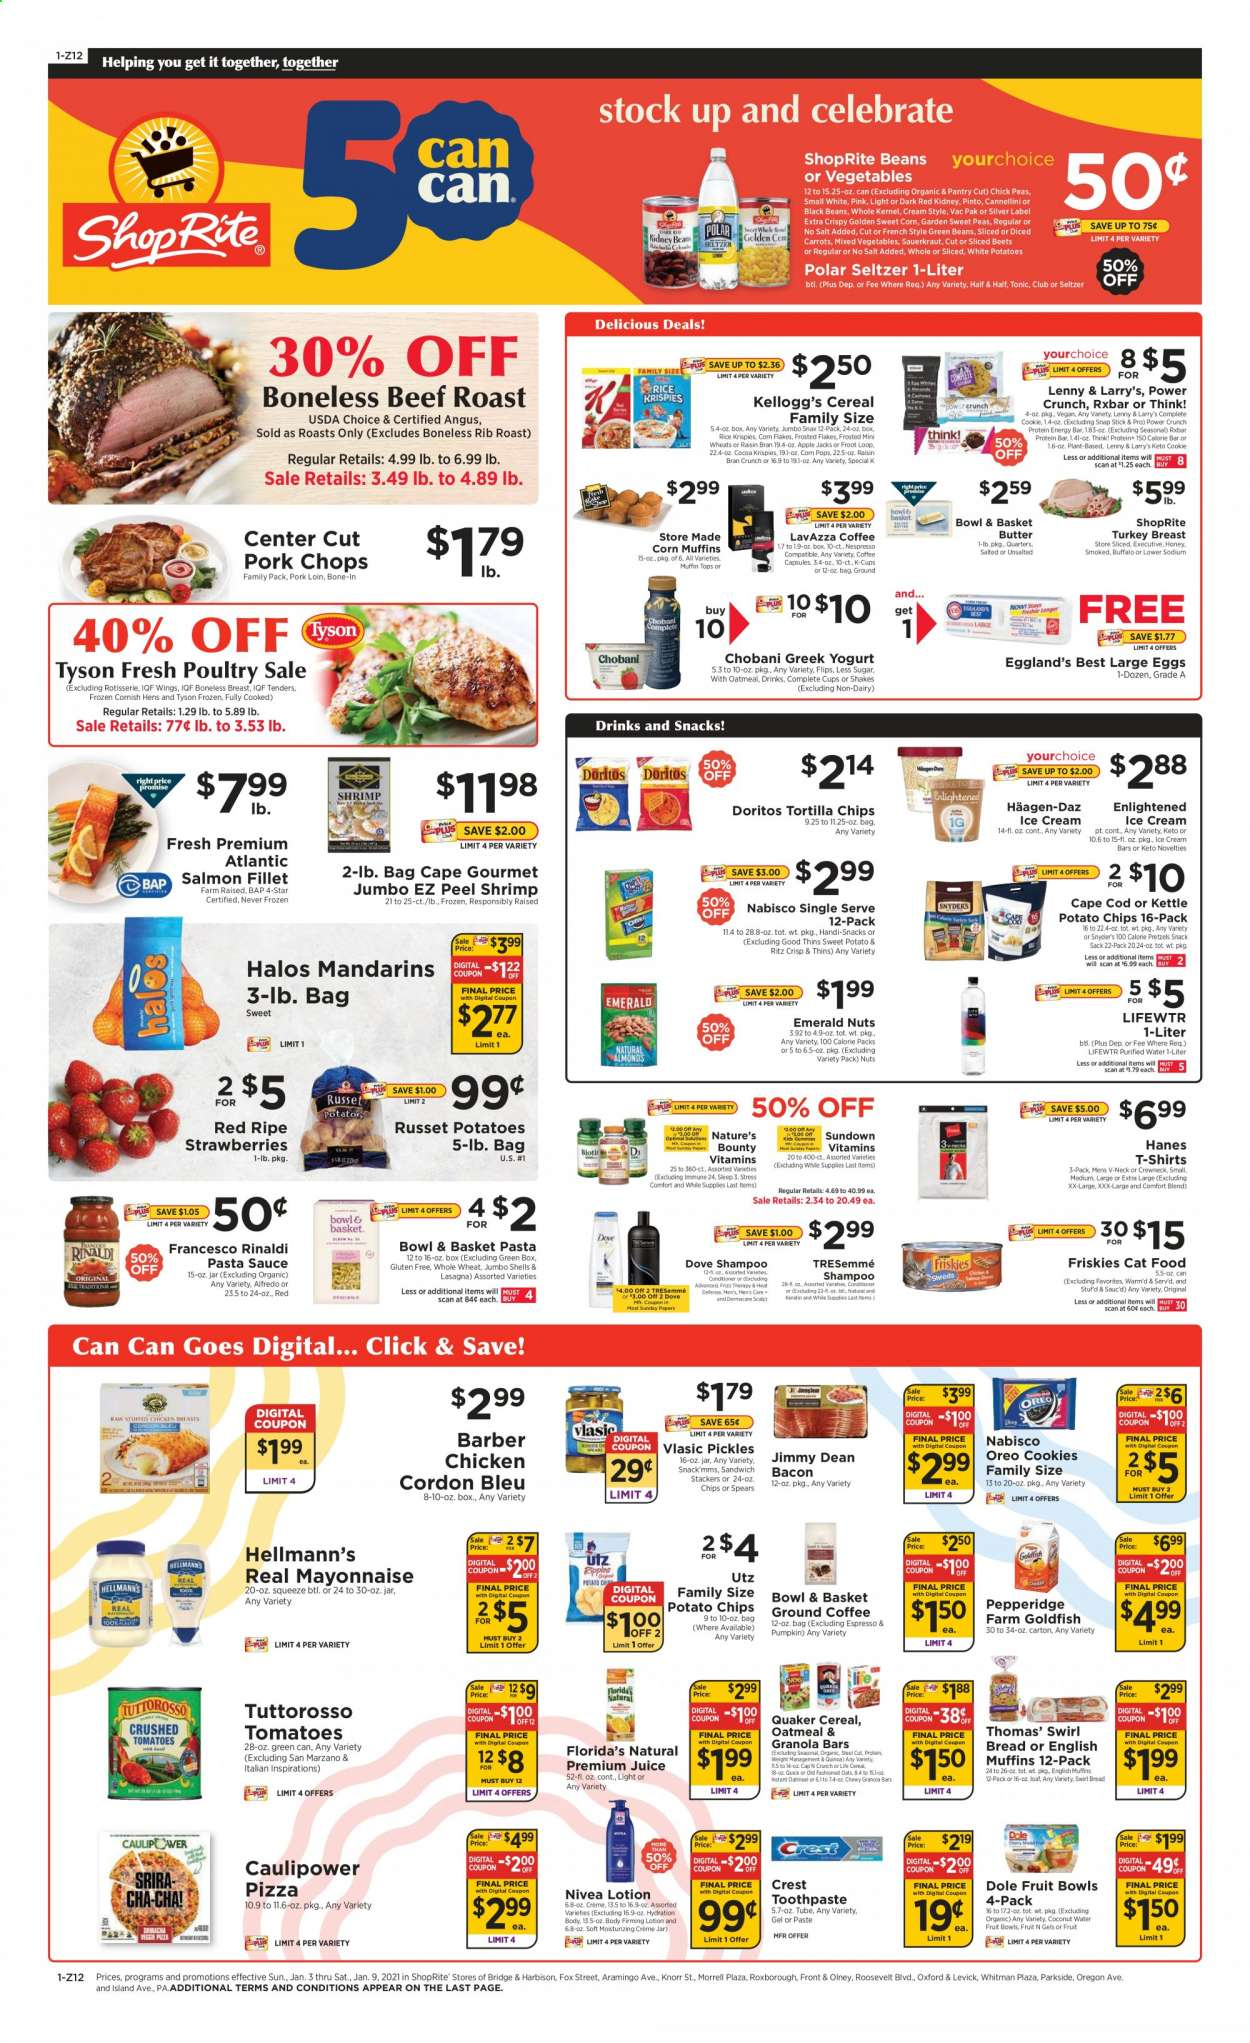 ShopRite Flyer - 01.03.2021 - 01.09.2021 - Sales products - alfredo sauce, animal food, apples, bacon, basket, beans, beef meat, beef roast, black beans, box, bran, bread, butter, cap, carrots, cat food, cereals, cocoa, cod, conditioner, cookies, corn, Doritos, Dove, eggs, frozen, granola, granola bars, greek yogurt, green beans, mayonnaise, moisturizing, Nature's Bounty, quinoa, rib roast, rice, russet potatoes, salmon, salmon fillet, sauerkraut, seltzer, shampoo, shirt, strawberries, sweet potatoes, tomatoes, tortilla chips, TRESemmé, turkey, turkey breast, honey, ice cream, ice cream bars, jar, pickles, pizza, pork chops, pork loin, pork meat, potato chips, potatoes, pretzels, protein, pumpkin, chicken, pasta sauce, peas, Nivea, oatmeal, oats, Oreo, chips, juice, coconut, sandwich, mixed vegetables, toothpaste, snack, pasta, salt, corn flakes, Knorr, Nespresso, sauce, flakes, nuts, Bounty, cordon bleu, Dole, tonic, Apple, shrimps, protein bar, coconut water, kettle, vegetable. Page 1.